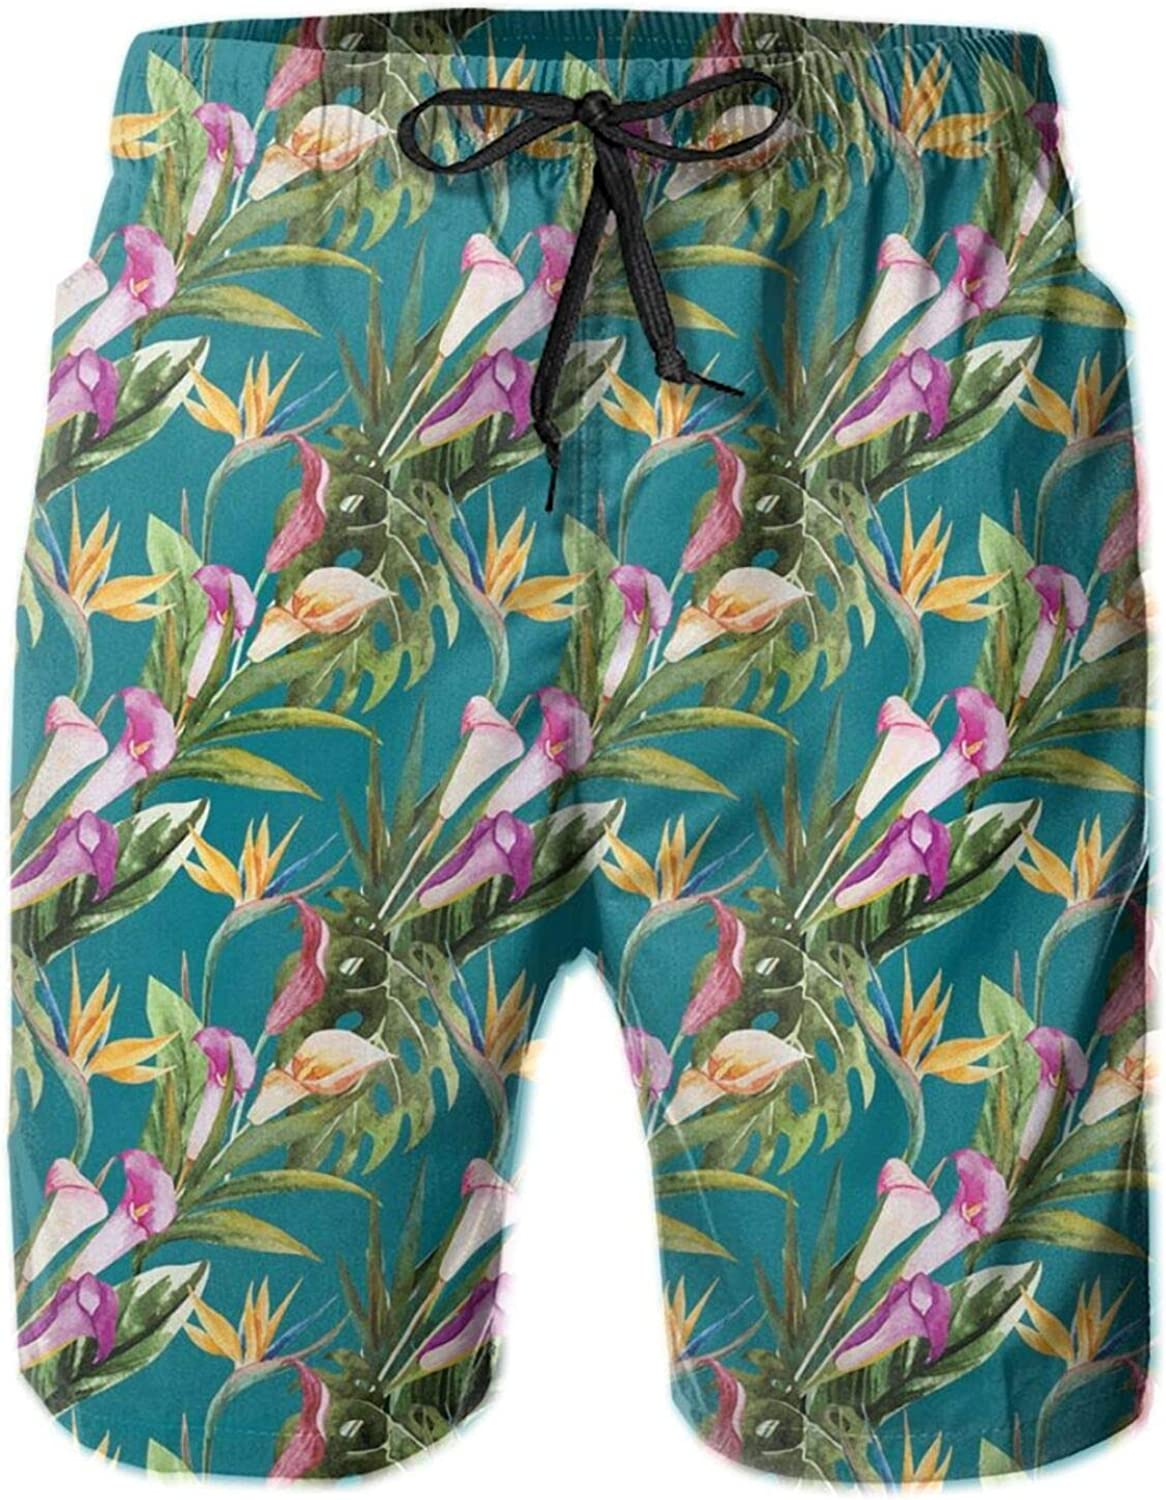 Exotic Lilies and Birds of Paradise Flowers in Watercolors On A Blue Background Drawstring Waist Beach Shorts for Men Swim Trucks Board Shorts with Mesh Lining,L